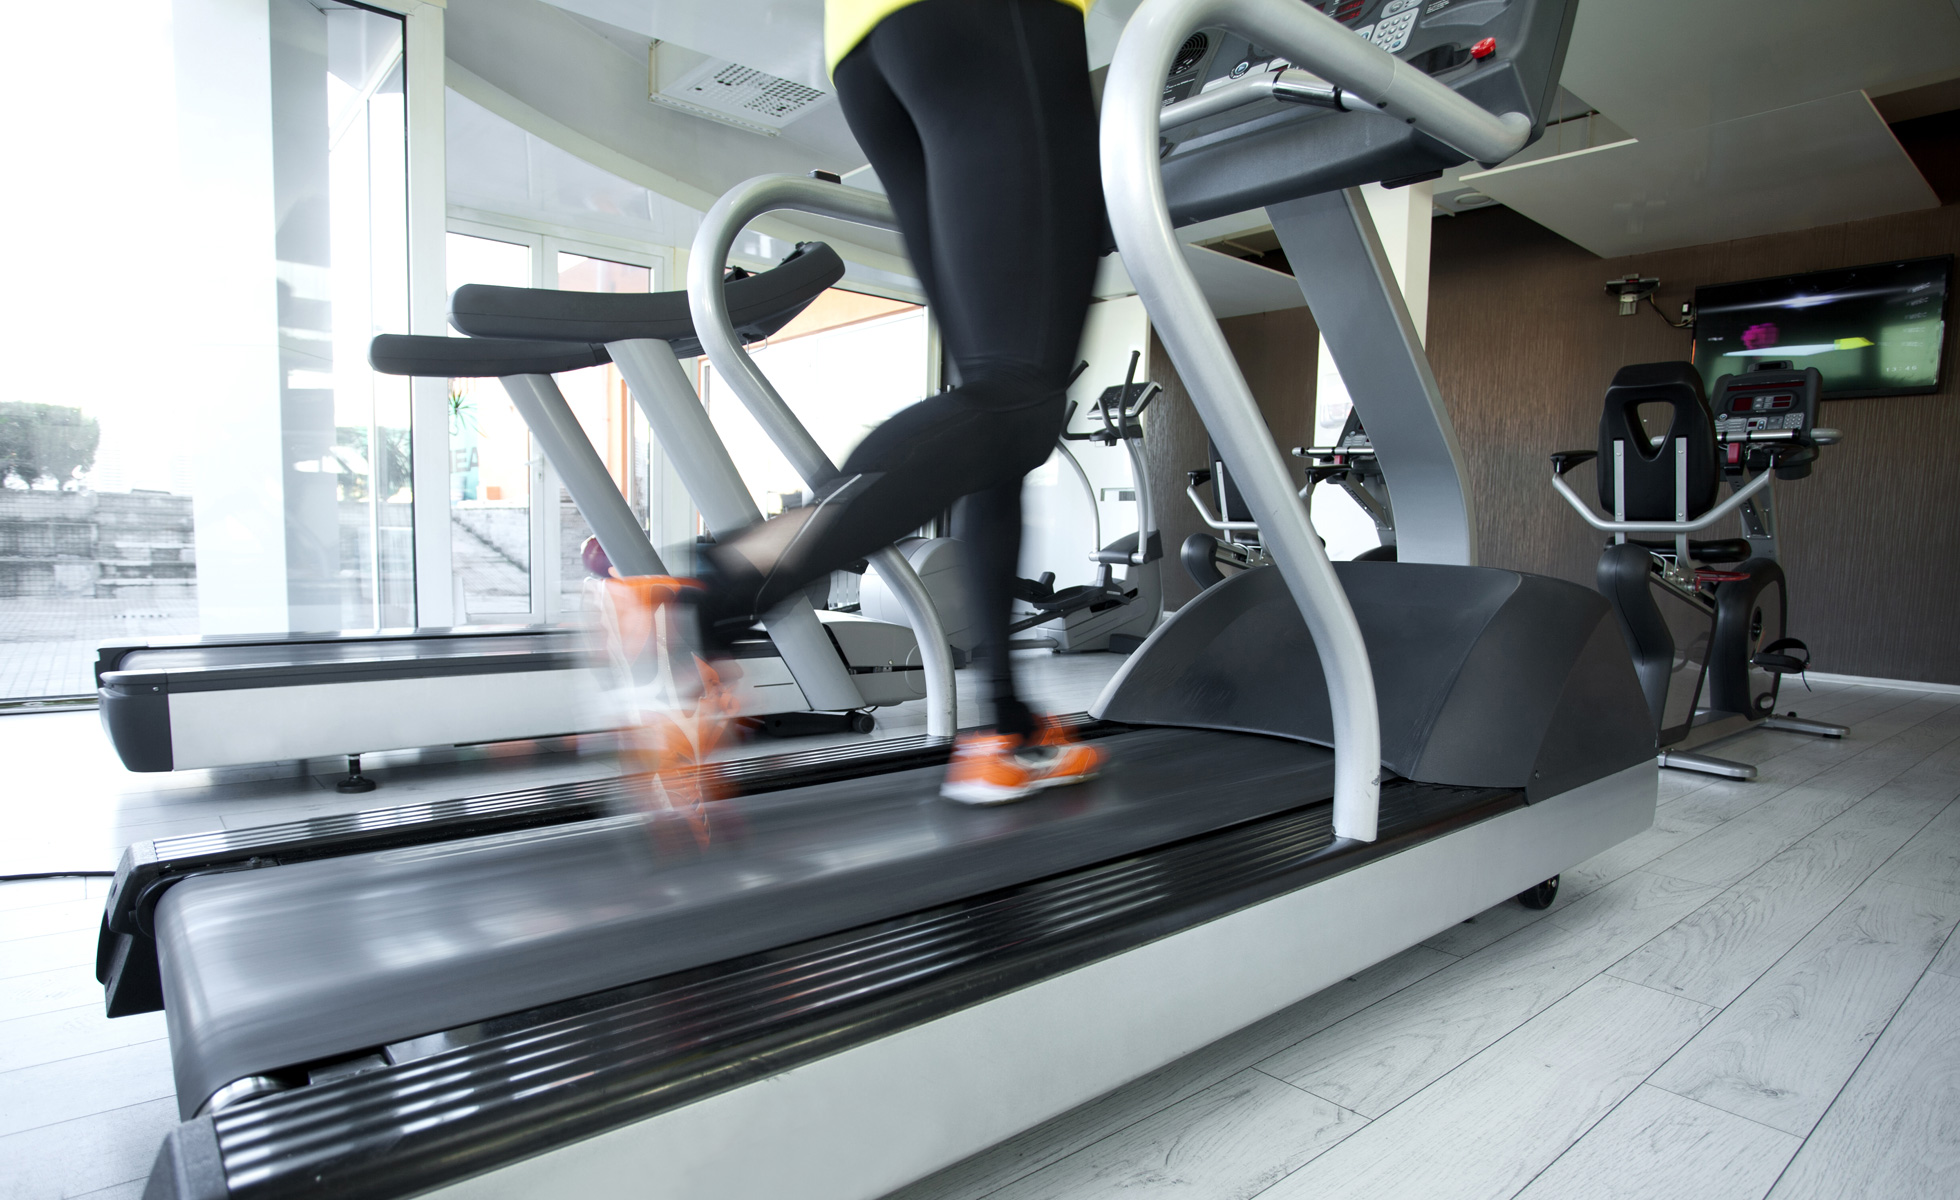 Burn 500 Calories on the Treadmill